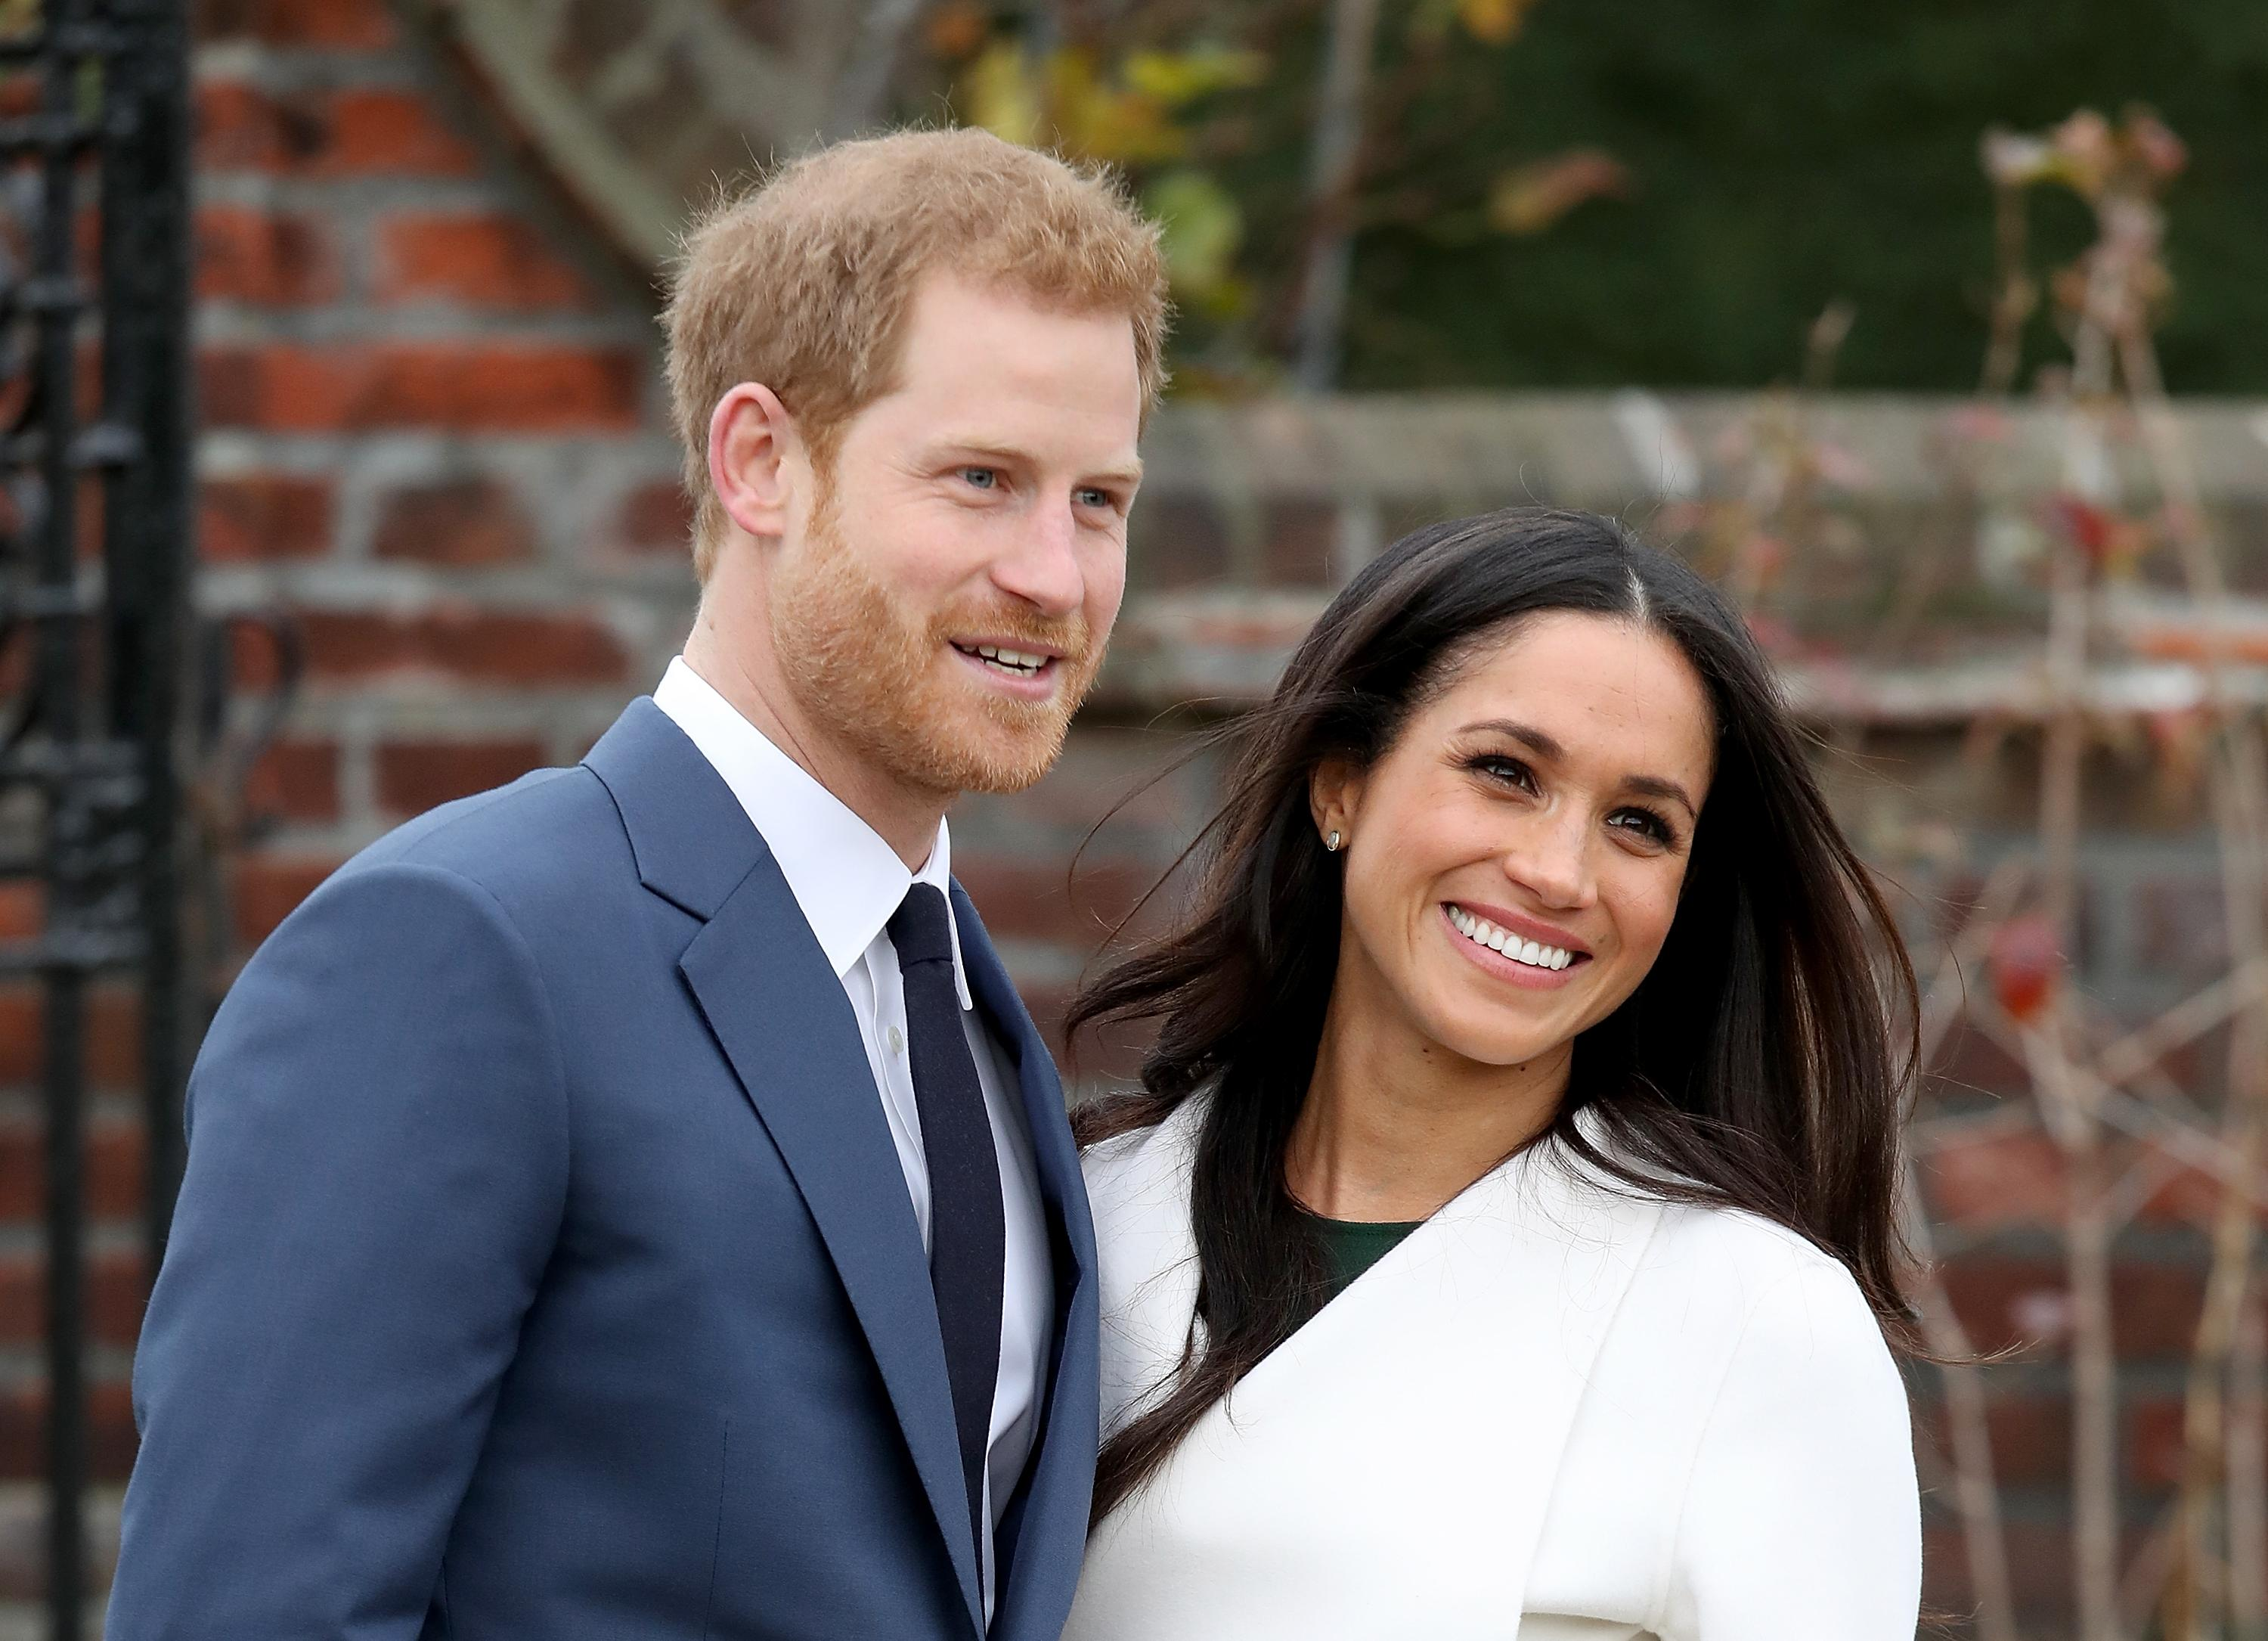 Prince Harry's fiancee Meghan Markle to spend Christmas with United Kingdom  royals